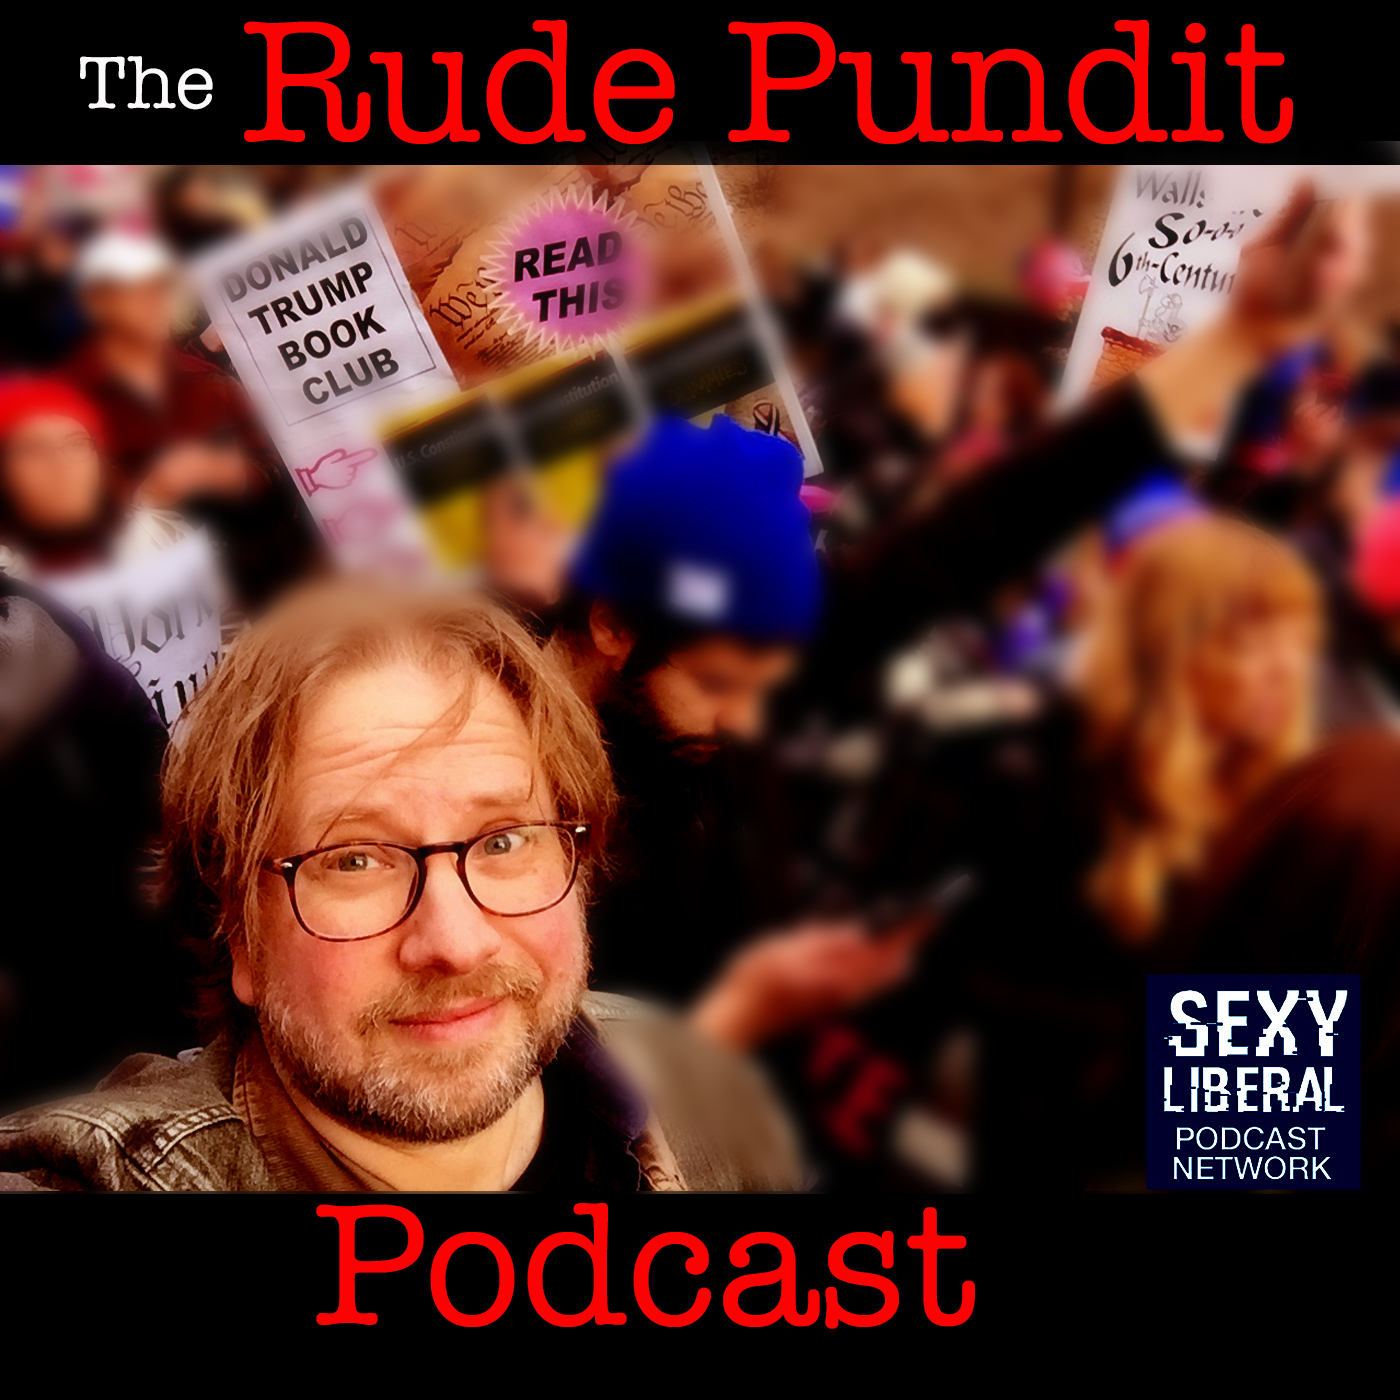 The Rude Pundit Podcast: Call the GOP's Bluff